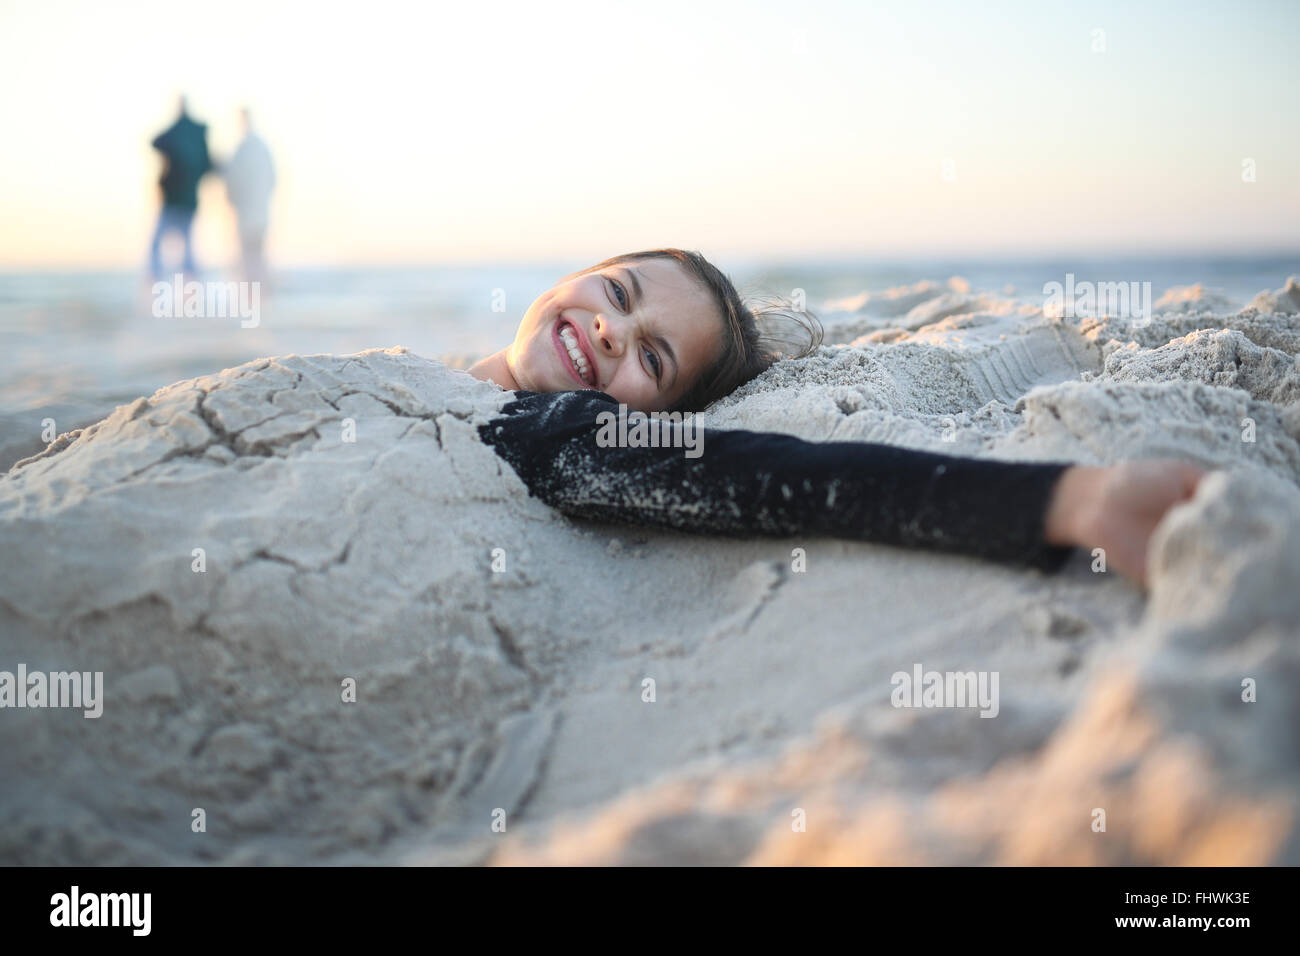 Plage, joie et plaisir. Rire, happy girl lying on a sandy beach Photo Stock